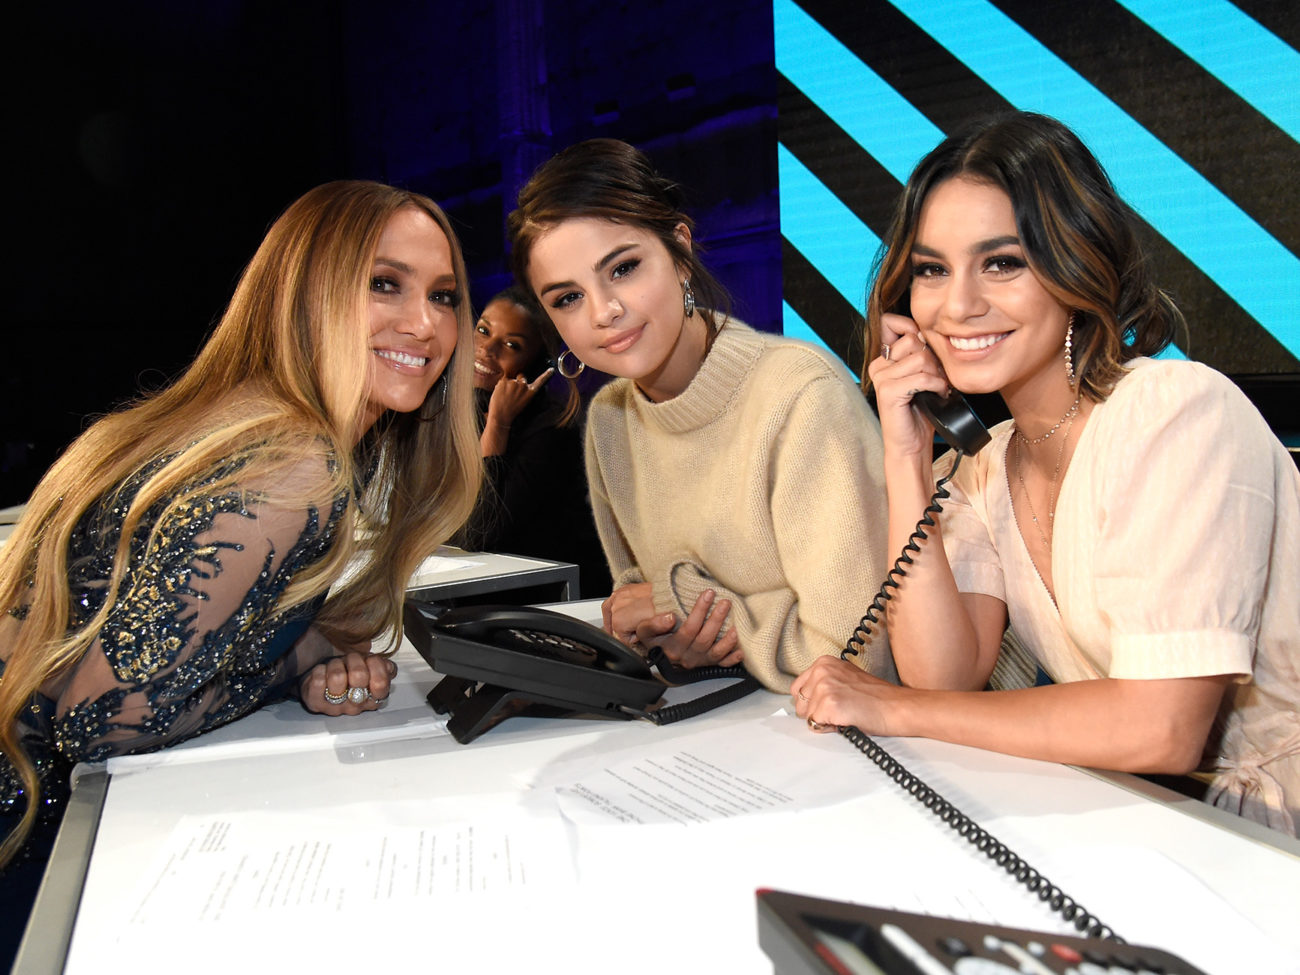 """LOS ANGELES, CA - OCTOBER 14:  In this handout photo provided by One Voice: Somos Live!, singers Jennifer Lopez and Selena Gomez and actor Vanessa Hudgens participate in the phone bank onstage during """"One Voice: Somos Live! A Concert For Disaster Relief"""" at the Universal Studios Lot on October 14, 2017 in Los Angeles, California.  (Photo by Kevin Mazur/One Voice: Somos Live!/Getty Images)"""